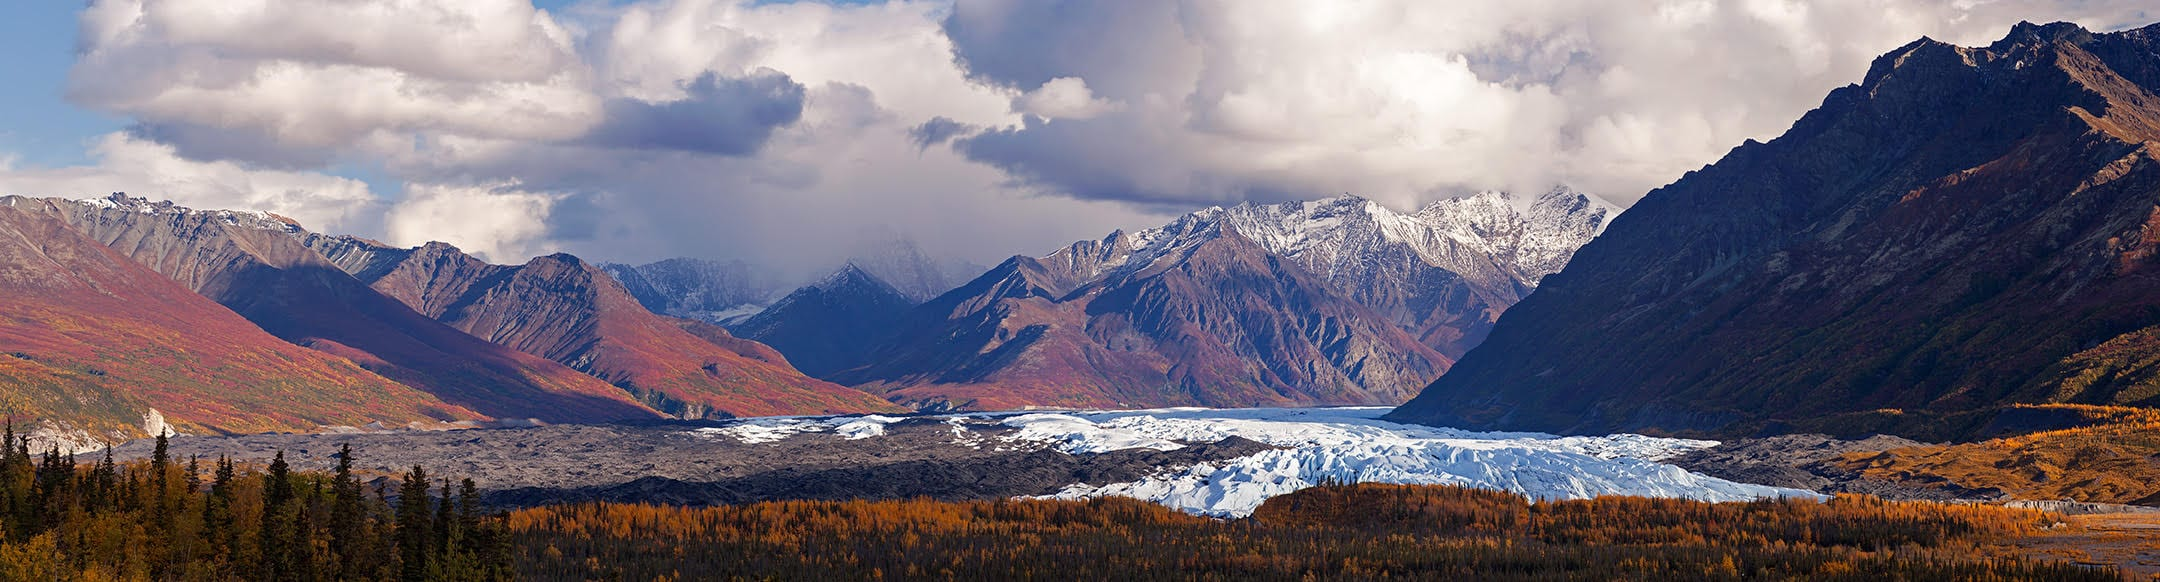 Matanuska Glacier Hike, Guided Glacier Tours, Summer & Winter Tour on Alaska's best glacier